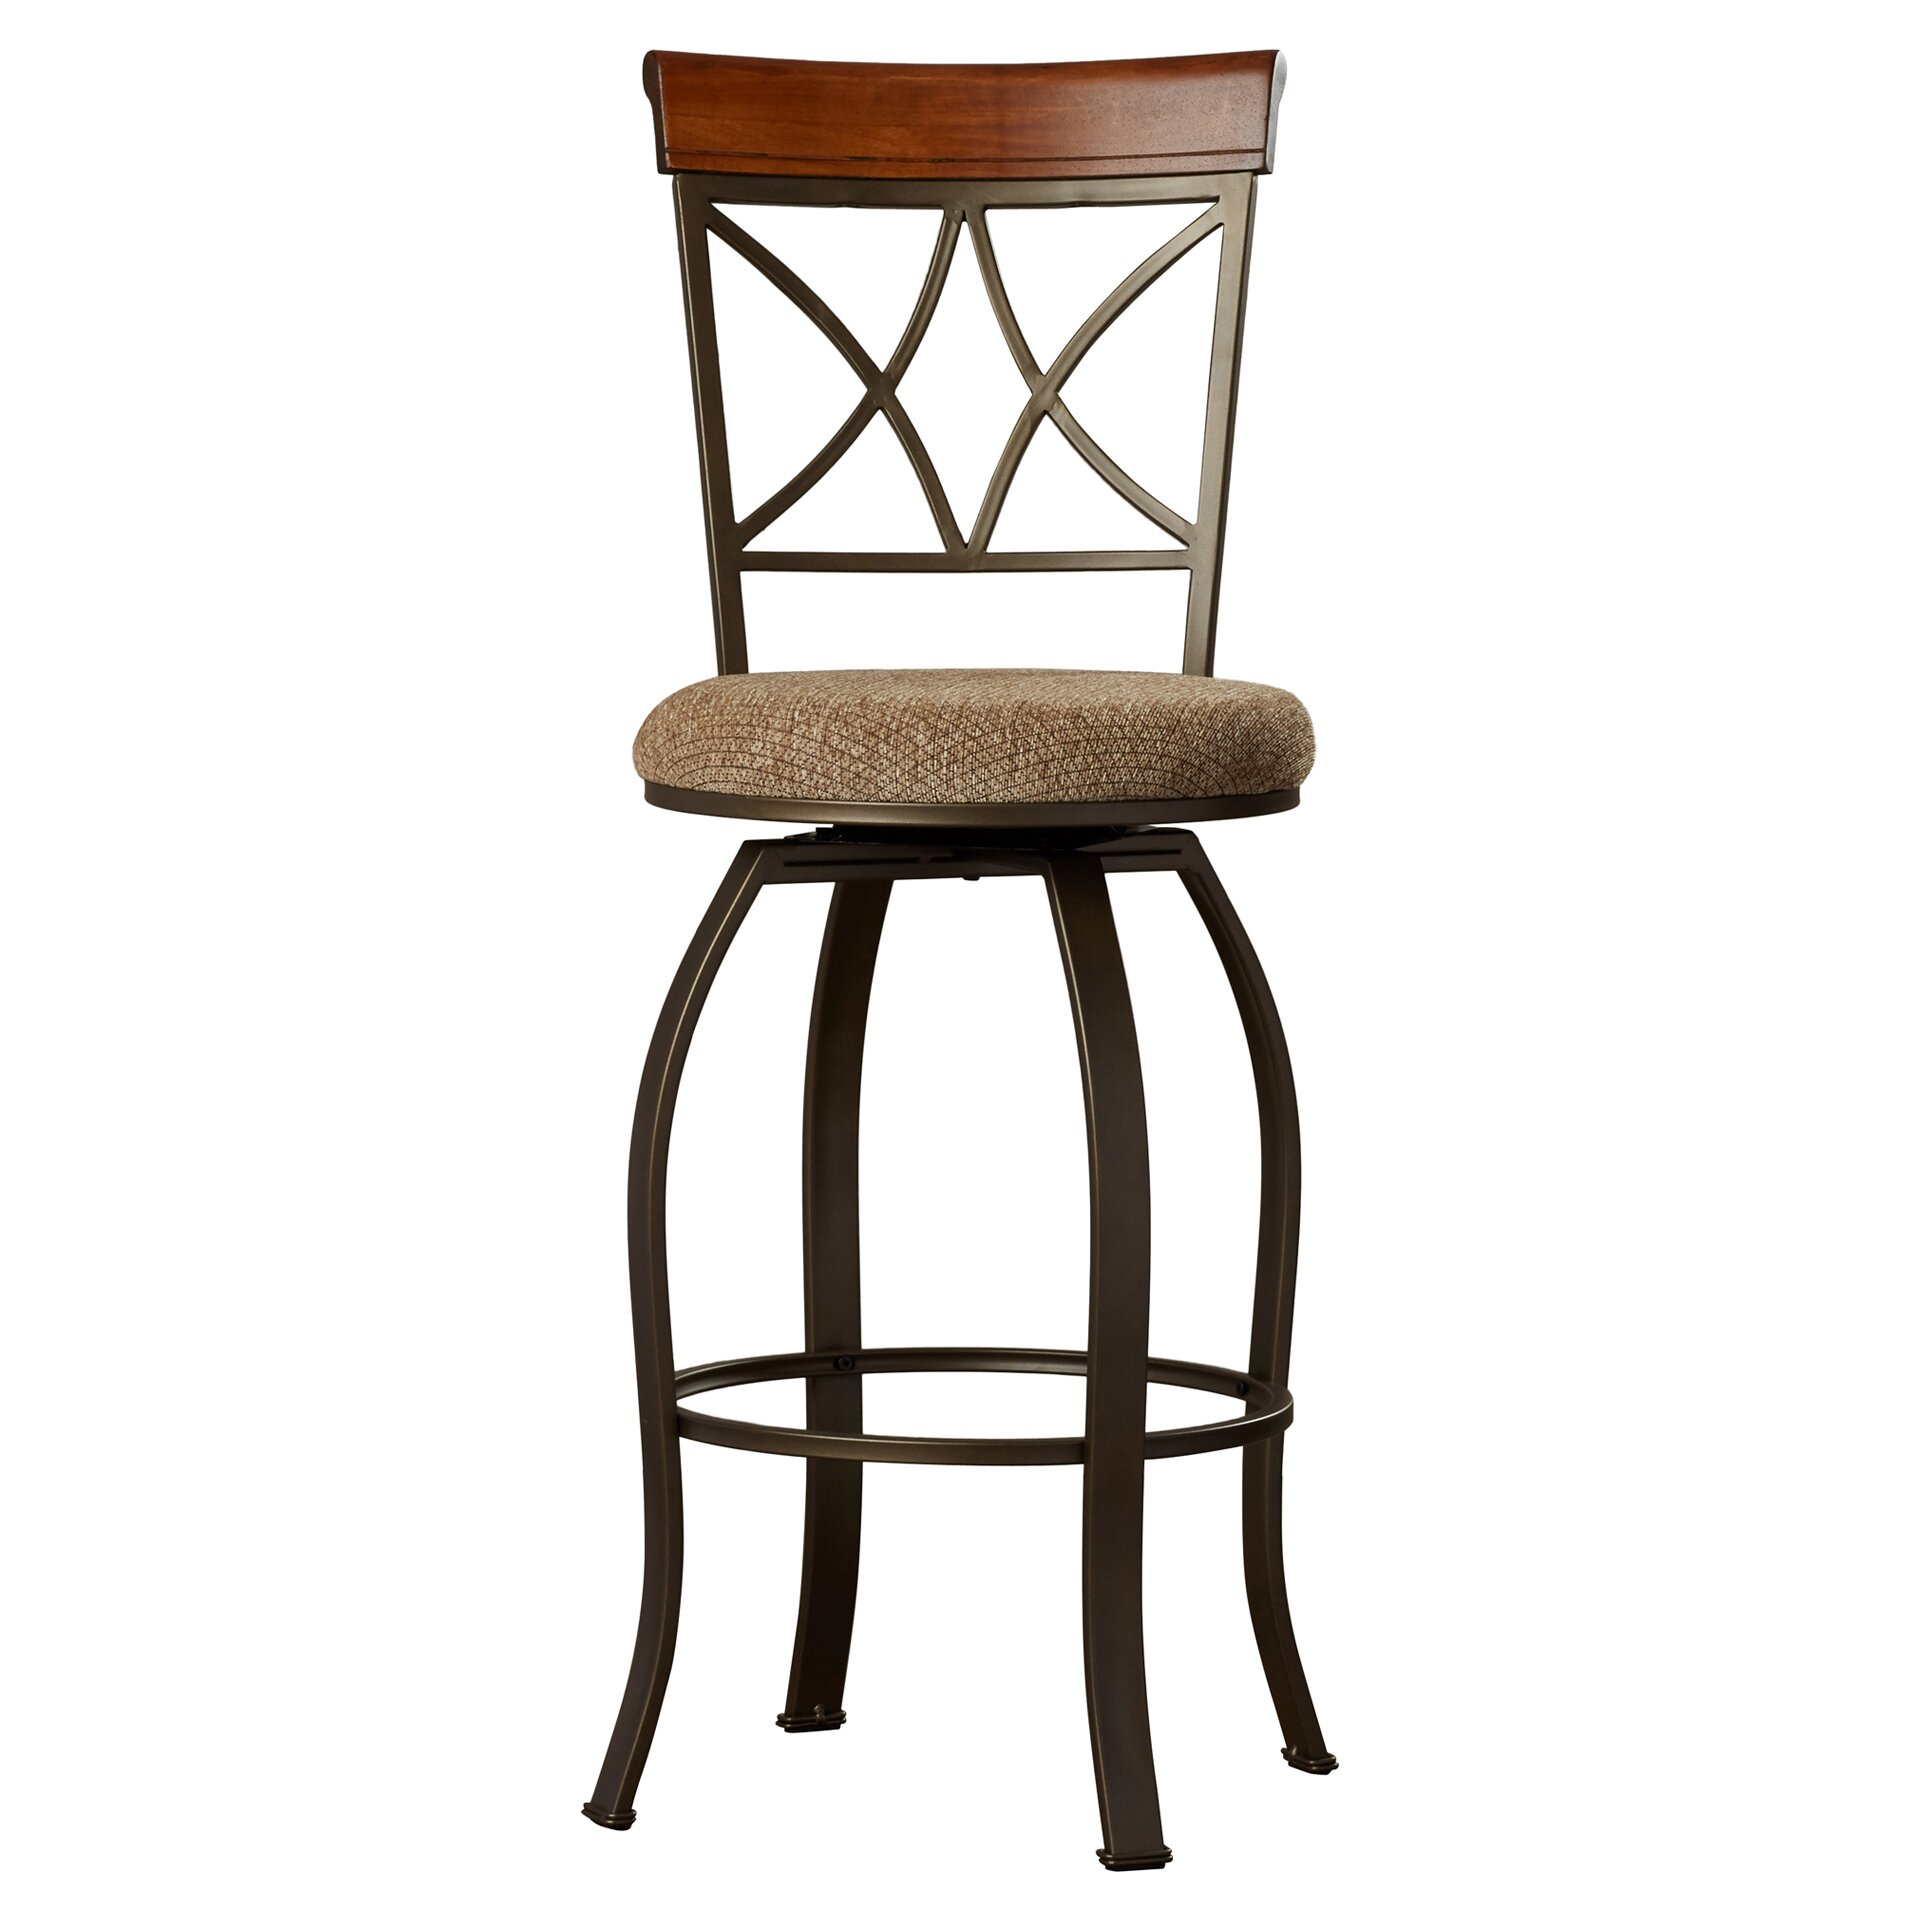 Charlton Home Follmer 29quot Swivel Bar Stool with Cushion  : Charlton Home Follmer 29 Swivel Bar Stool with Cushion from www.wayfair.com size 1920 x 1920 jpeg 235kB